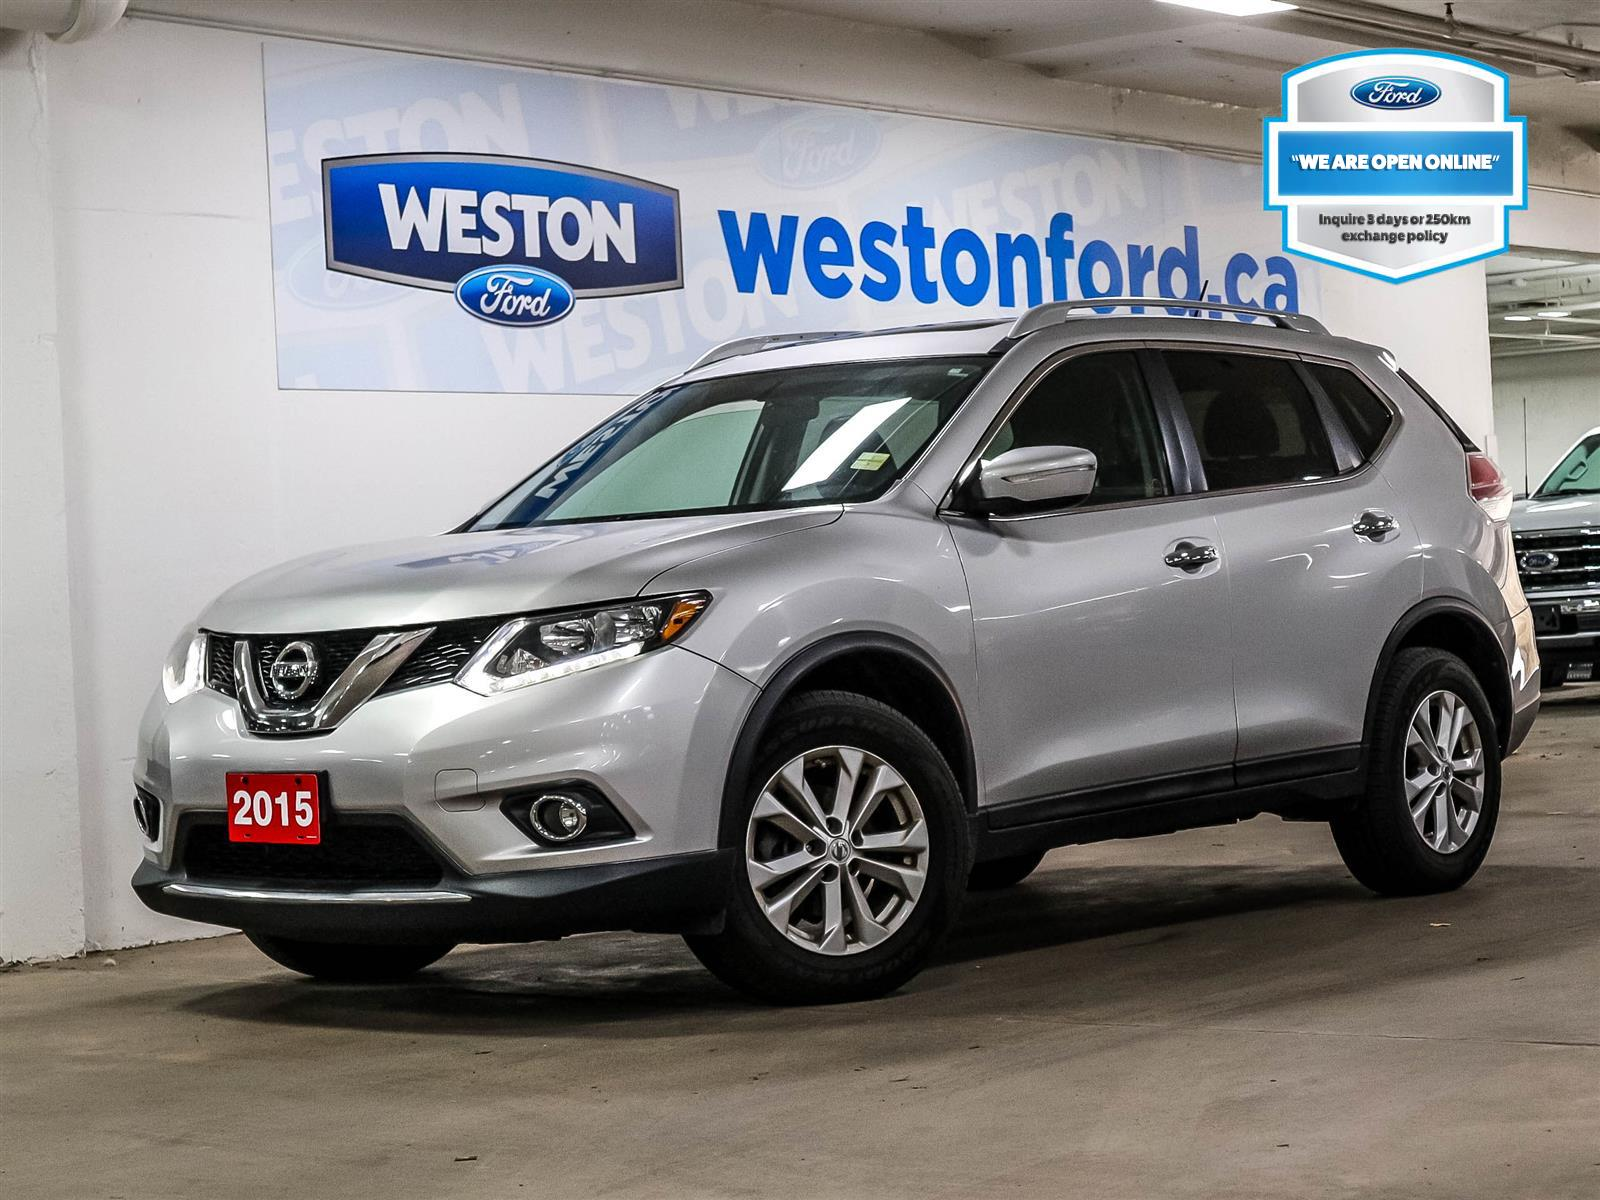 used 2015 Nissan Rogue car, priced at $16,978